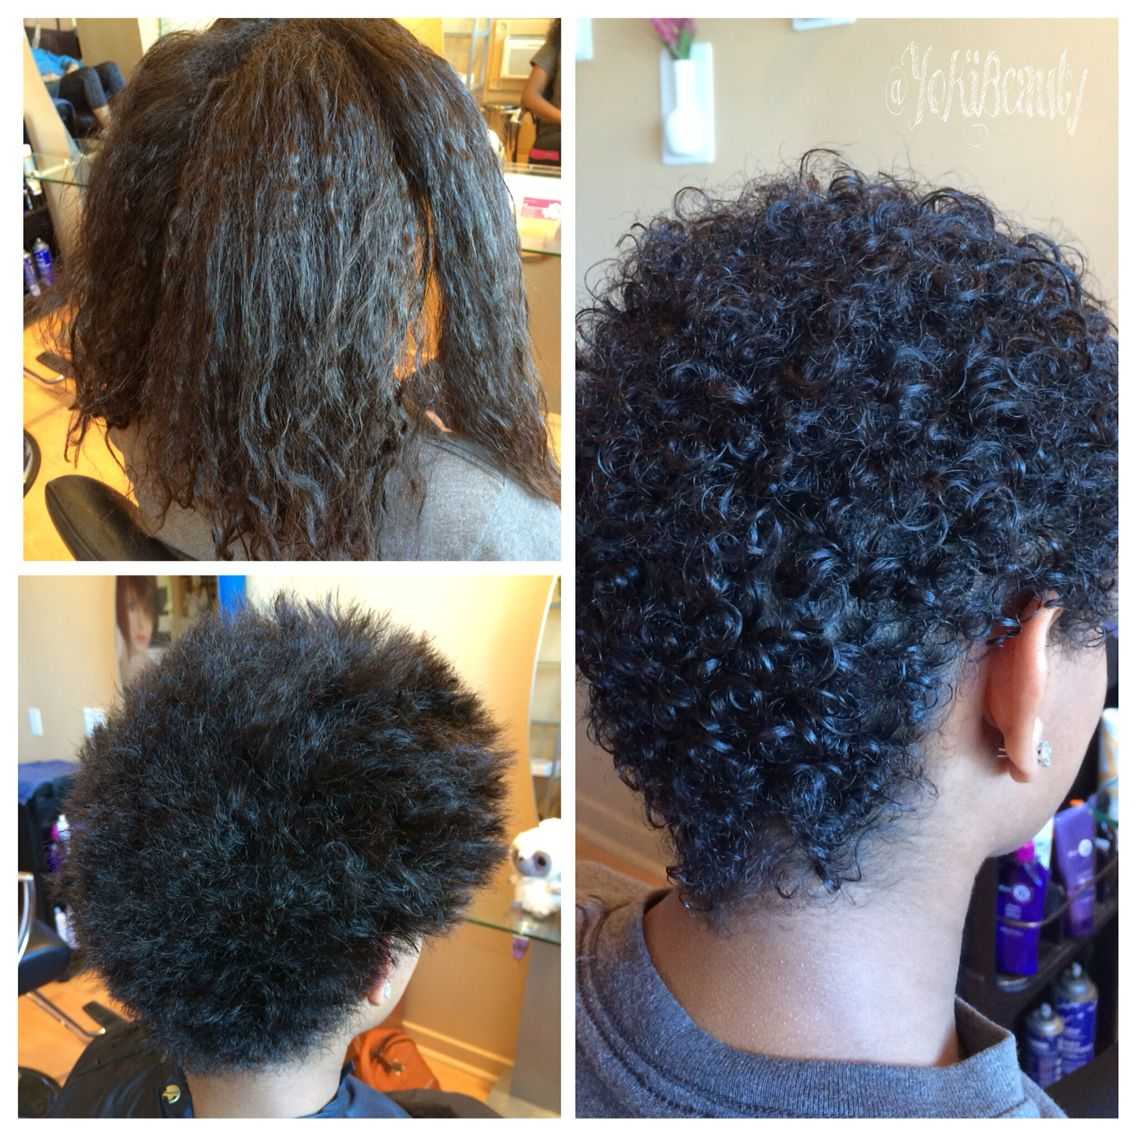 The big chop!! Before cutting her relaxed hair and after